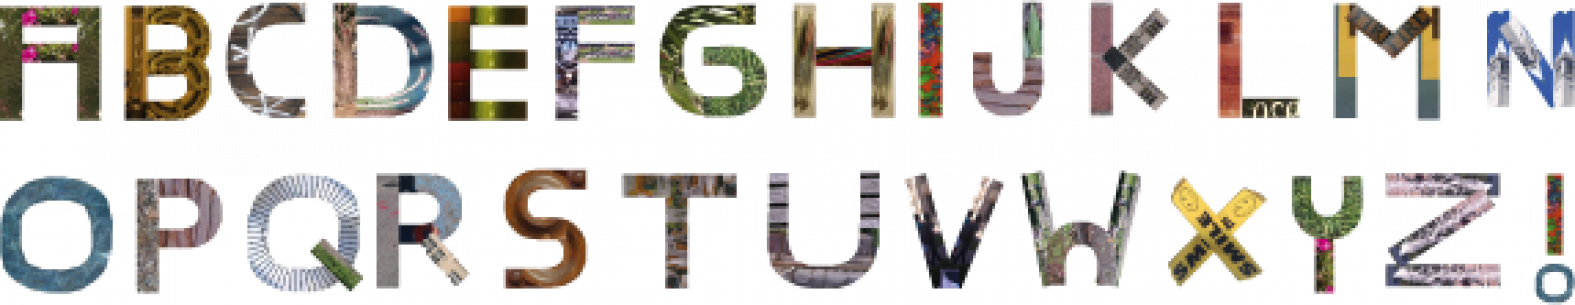 anytype_home_banner.png